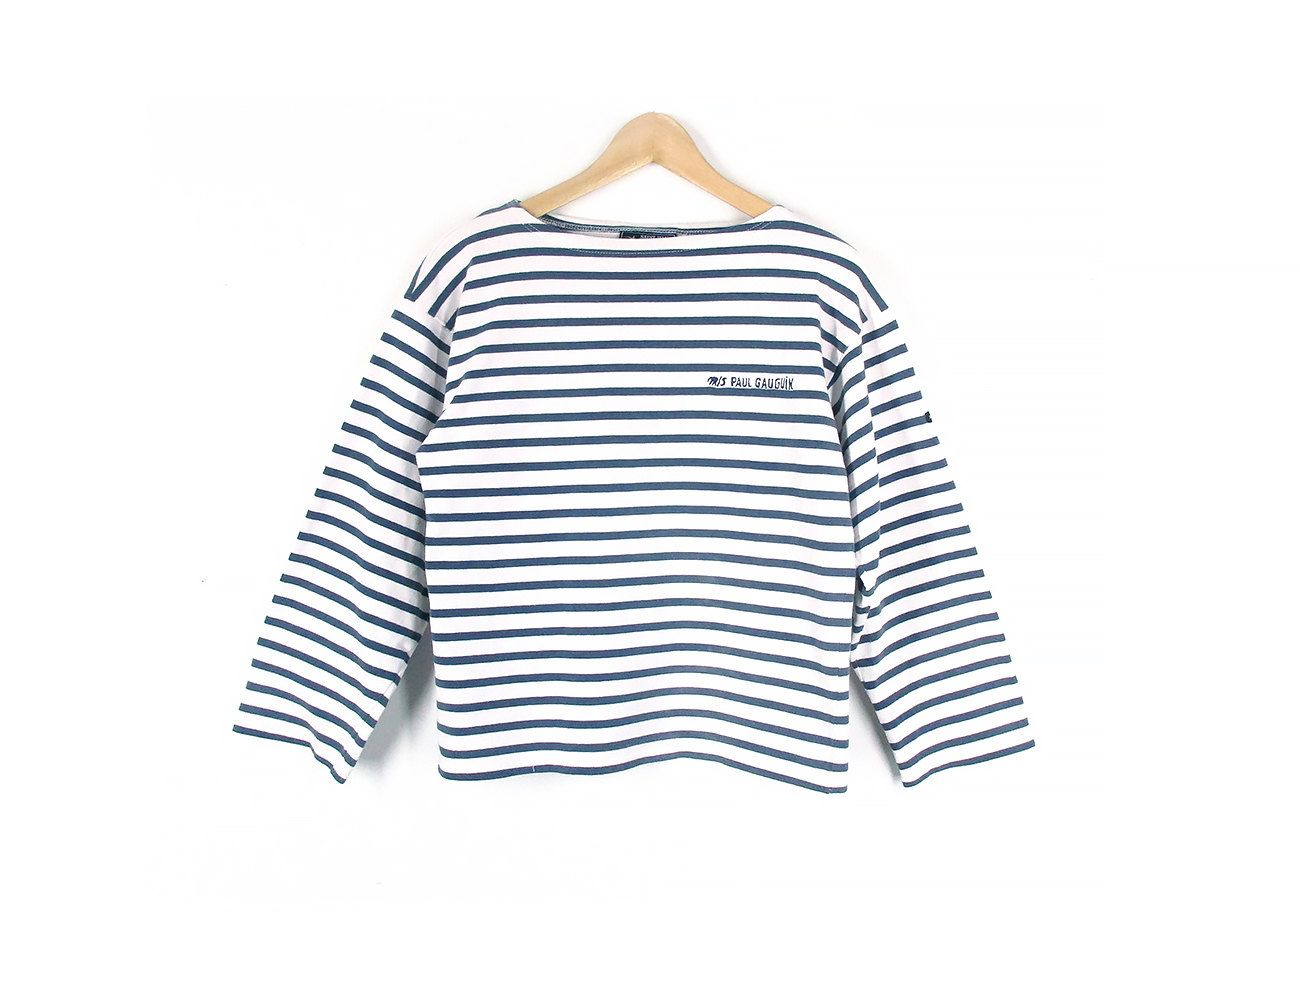 5148aac4fb French Sailor Striped T Shirt - DREAMWORKS